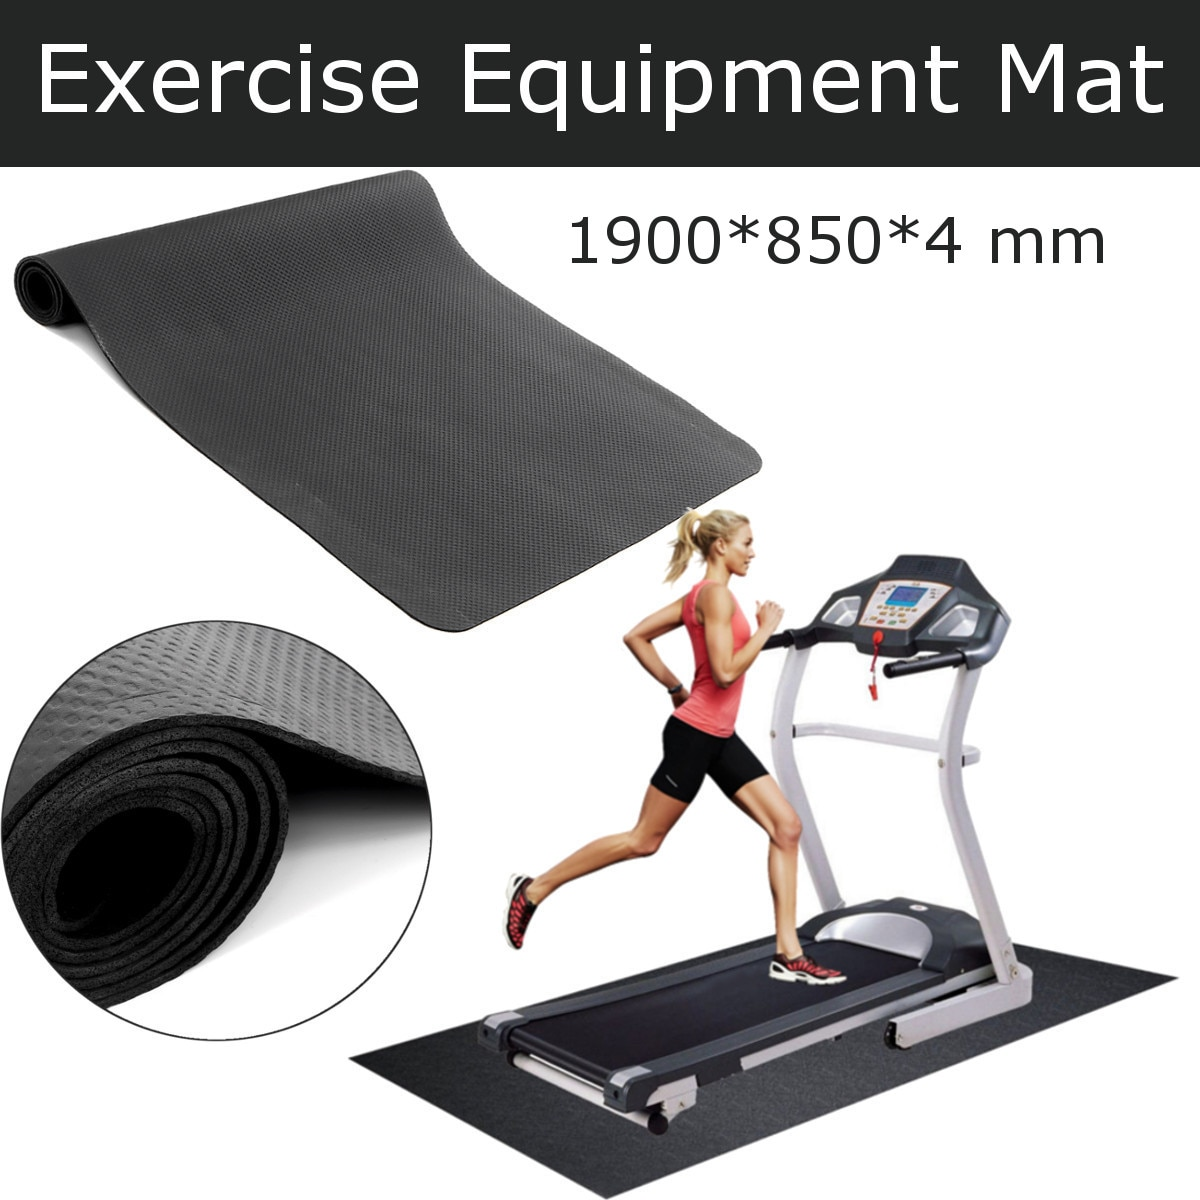 190x85cm NBR Exercise Mat Gym Fitness Equipment For Treadmill Bike Protect Floor Mat Running Machine Shock Absorbing Pad Black